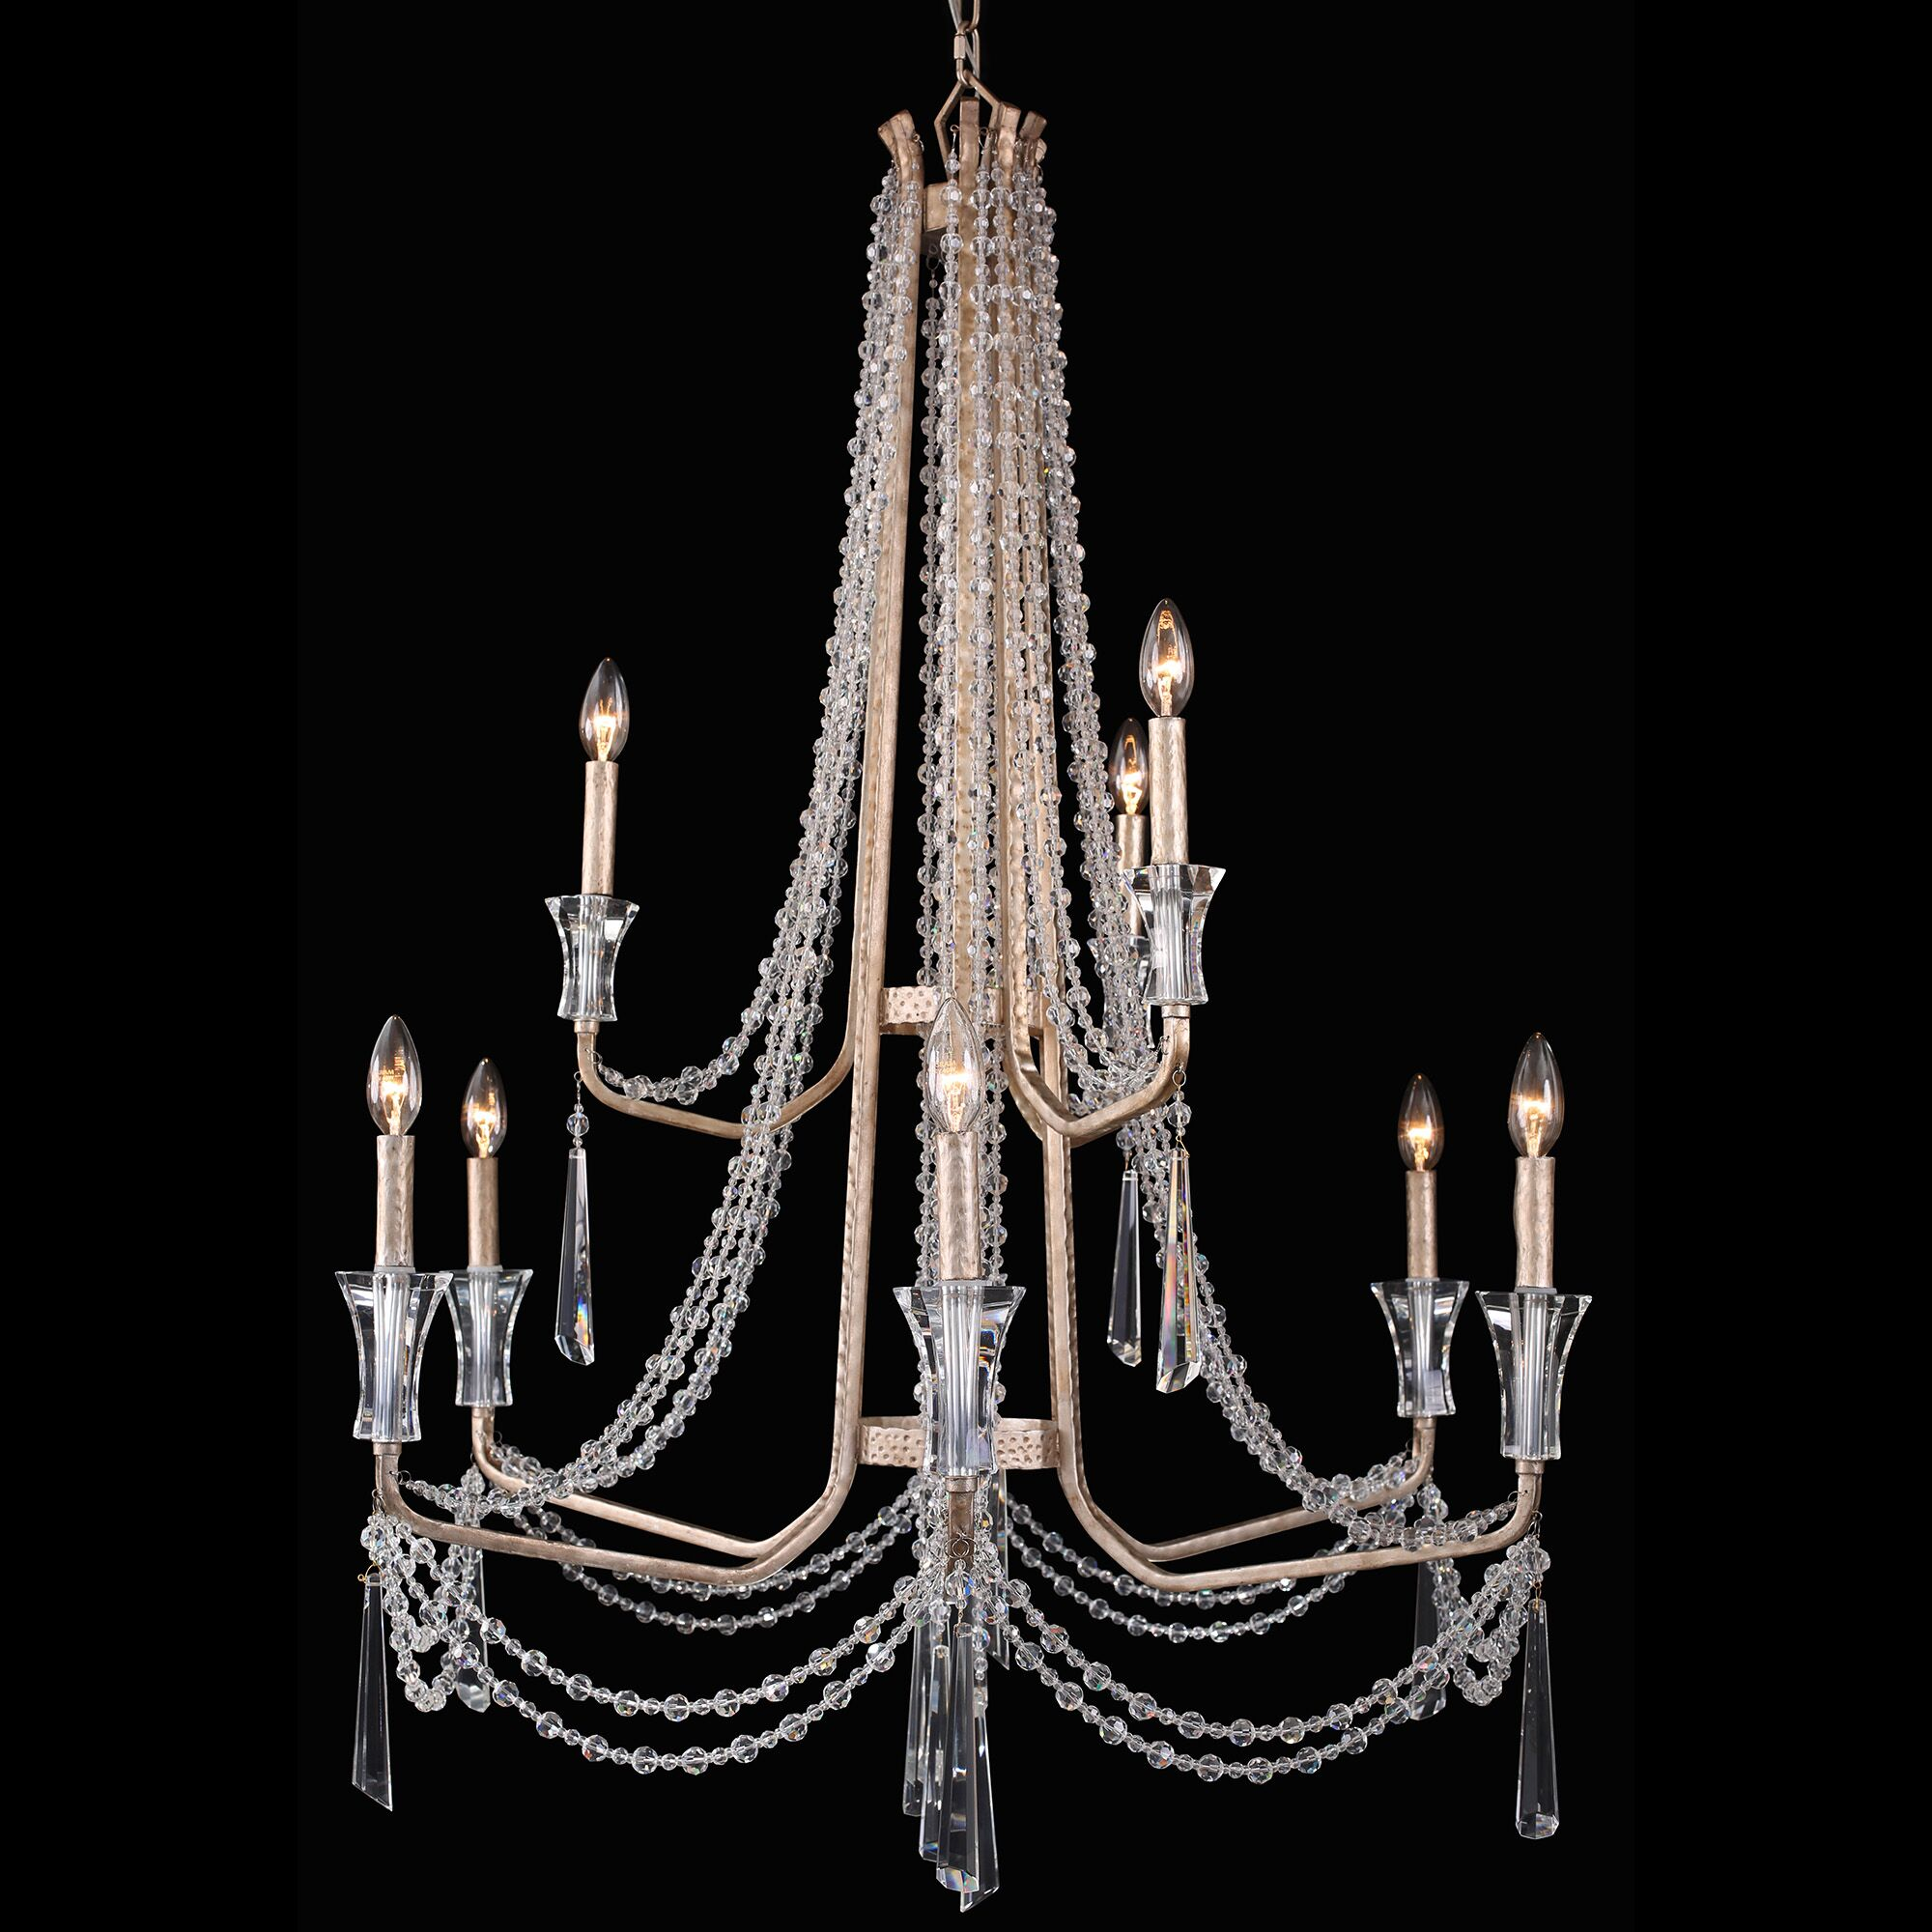 Jarrett 9-Light Crystal Chandelier